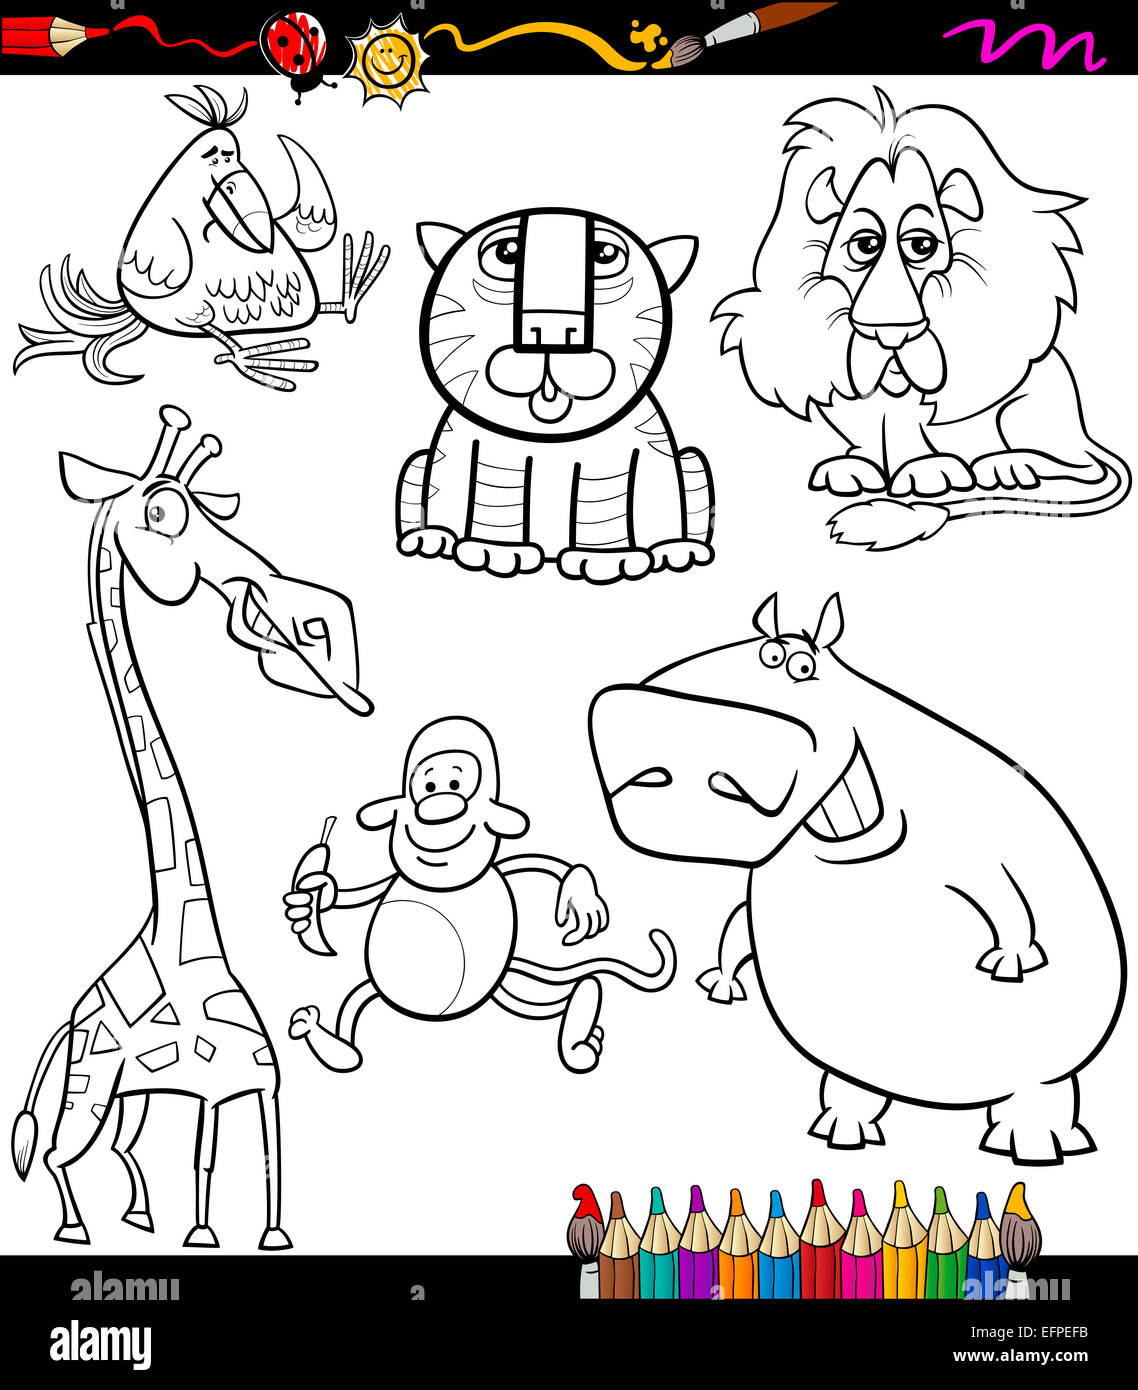 Flickriver: Photoset 'Coloring Pages' by slappy427   1390x1137